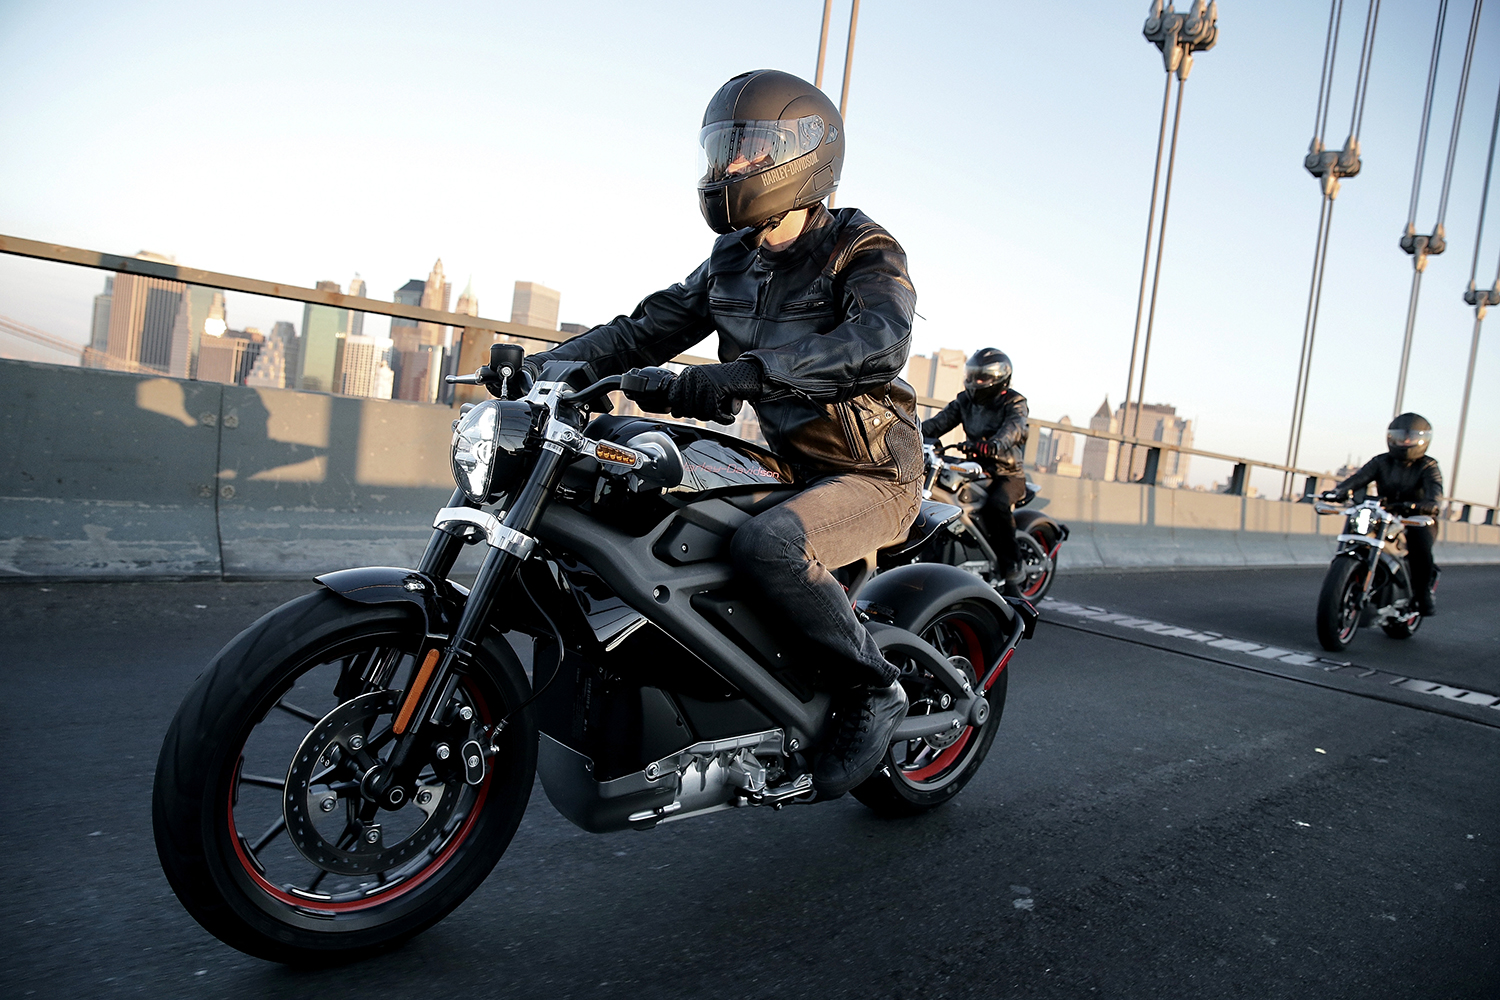 Harley Davidson Electric Motorcycle Coming In 18 Months